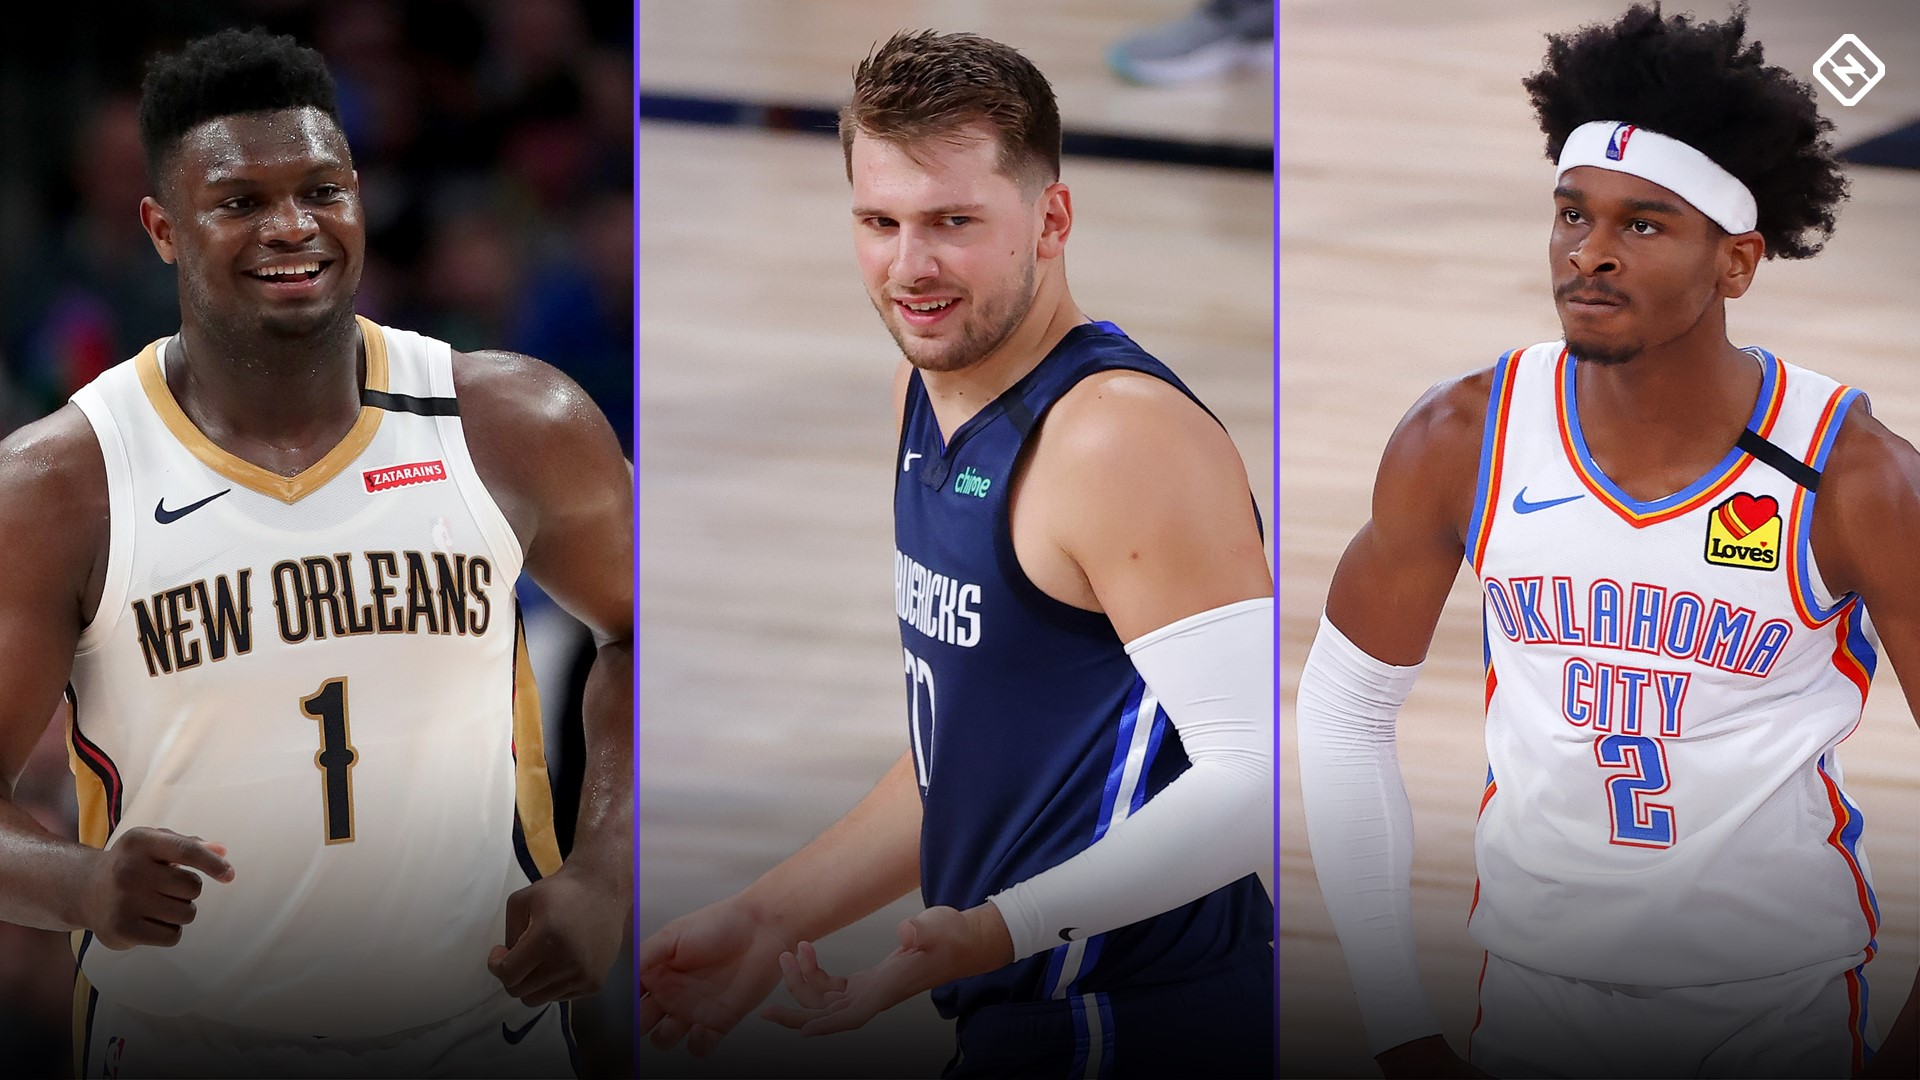 NBA teams with brightest futures: Thunder, Mavericks, Pelicans among risers ahead of draft